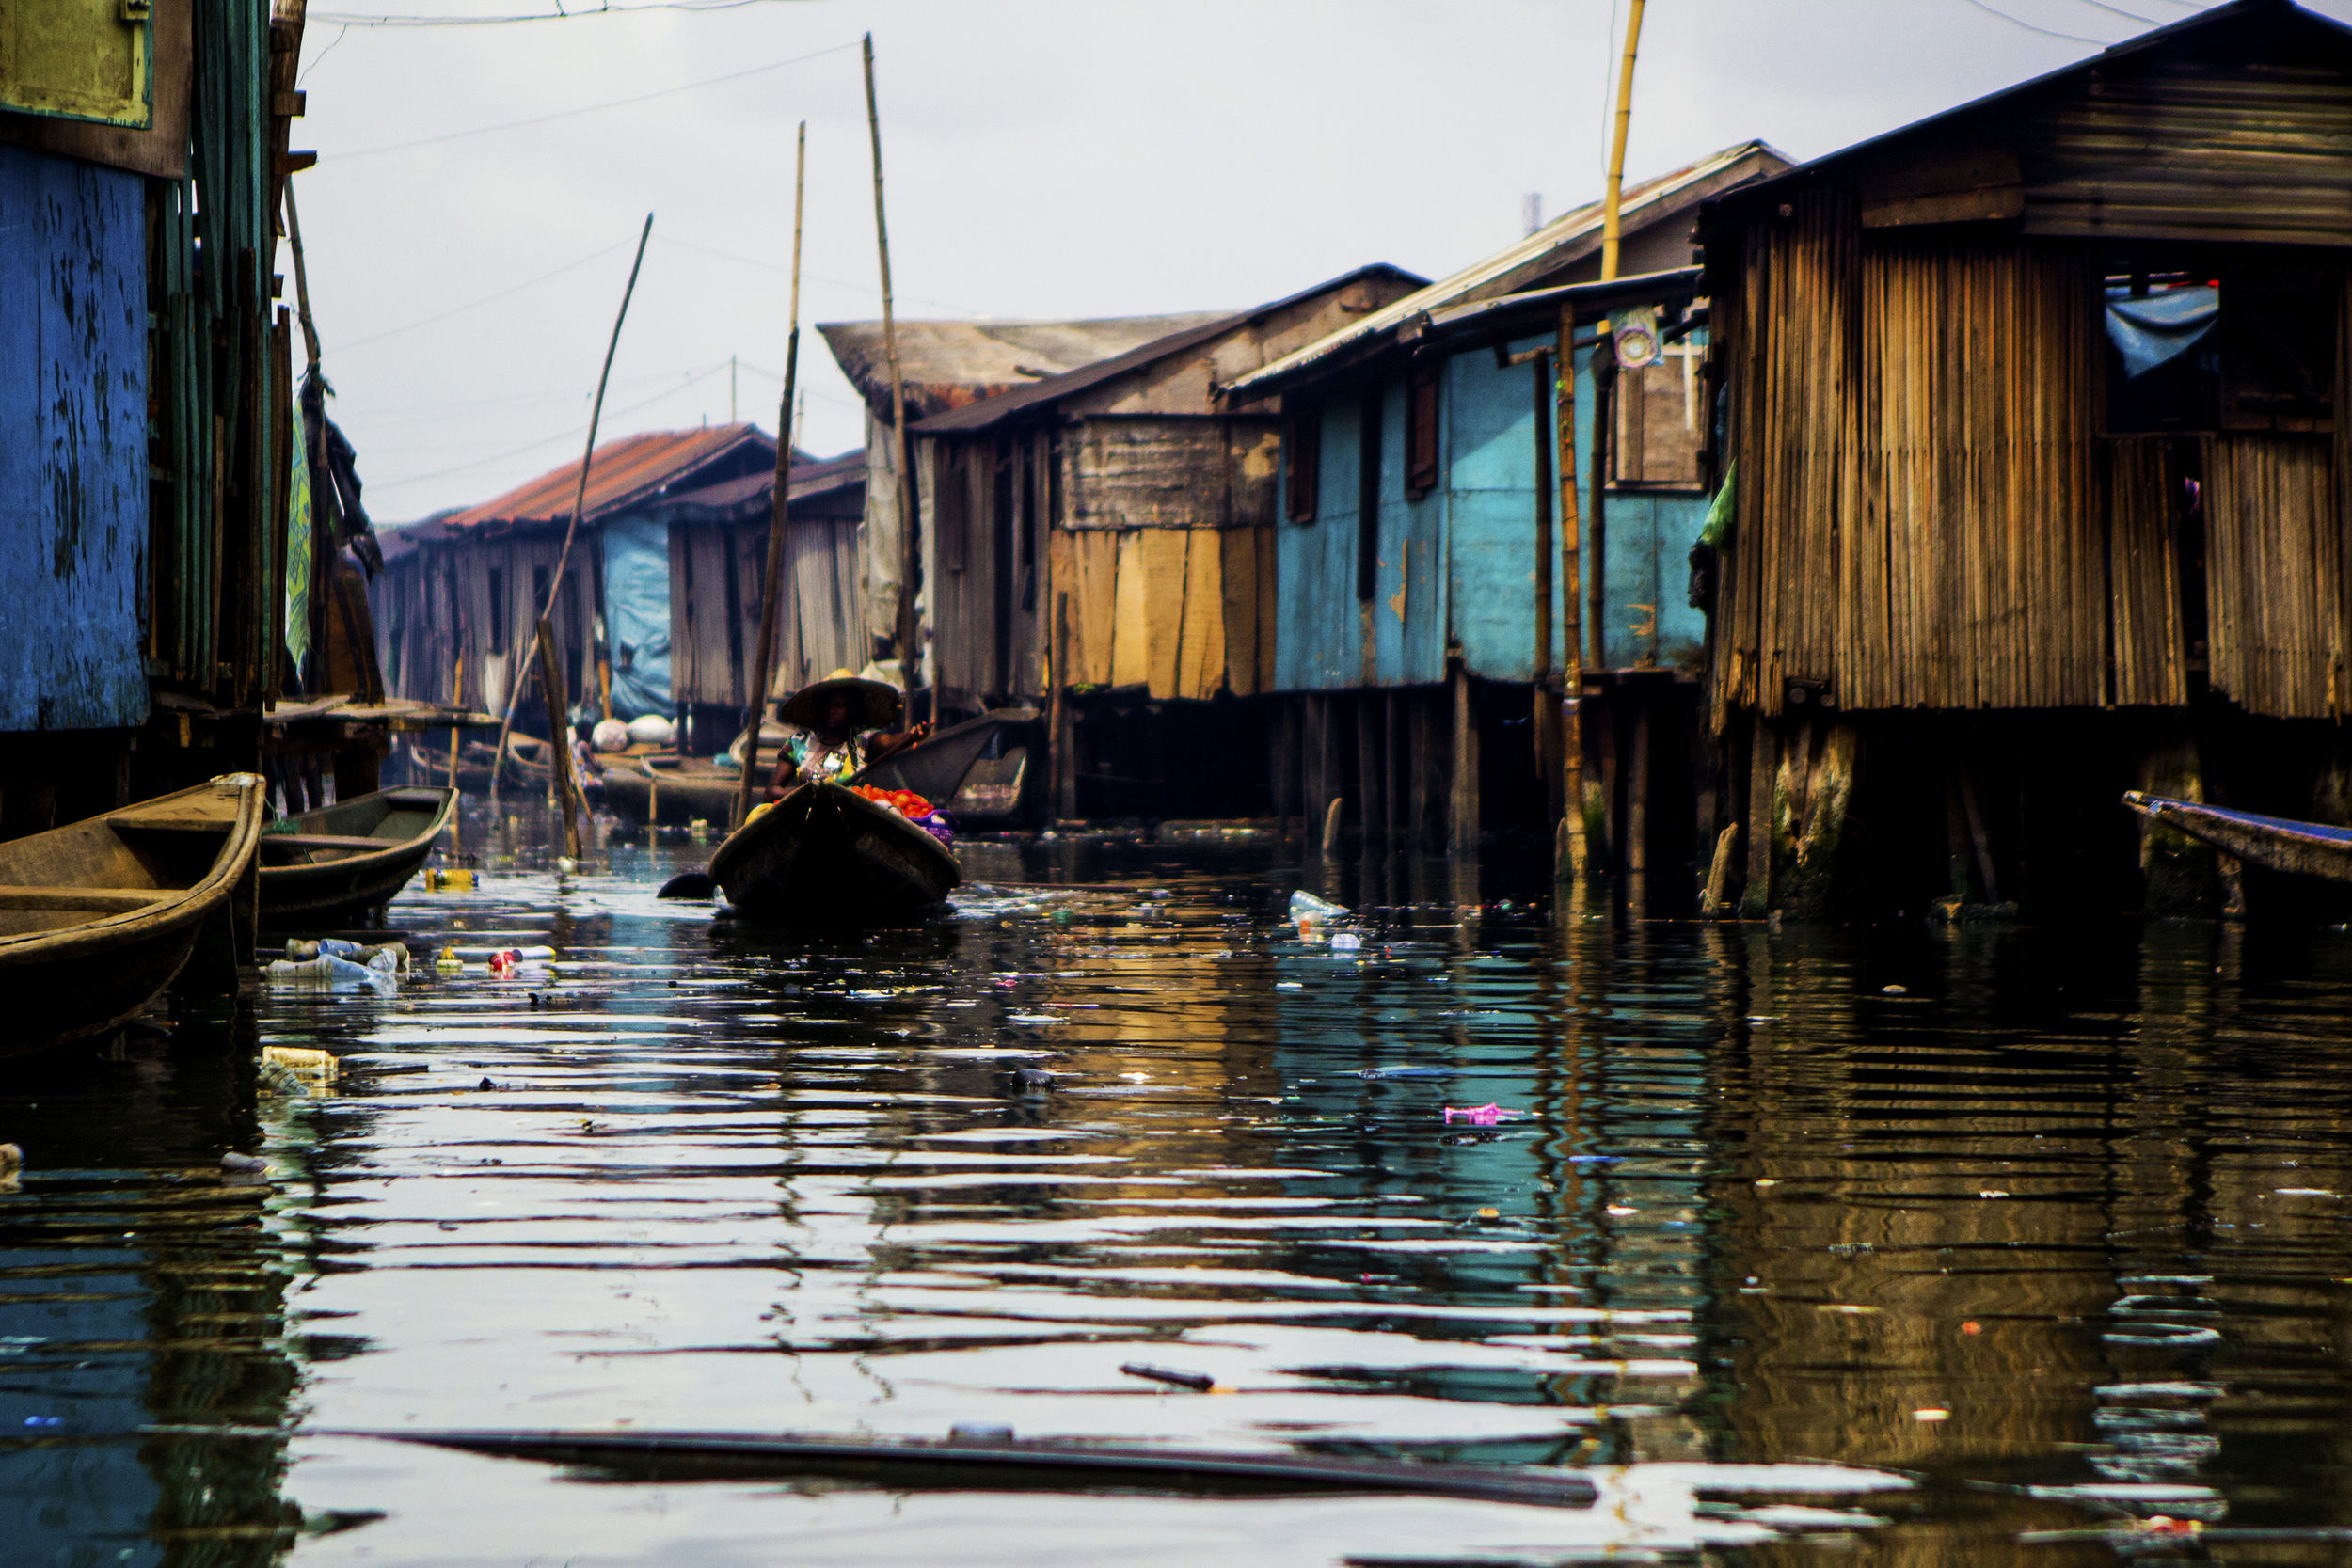 Lagos, Nigeria. Feb. 26, 2015. A resident of the Makoko floating villages uses a canoe to navigate the area's passageways.